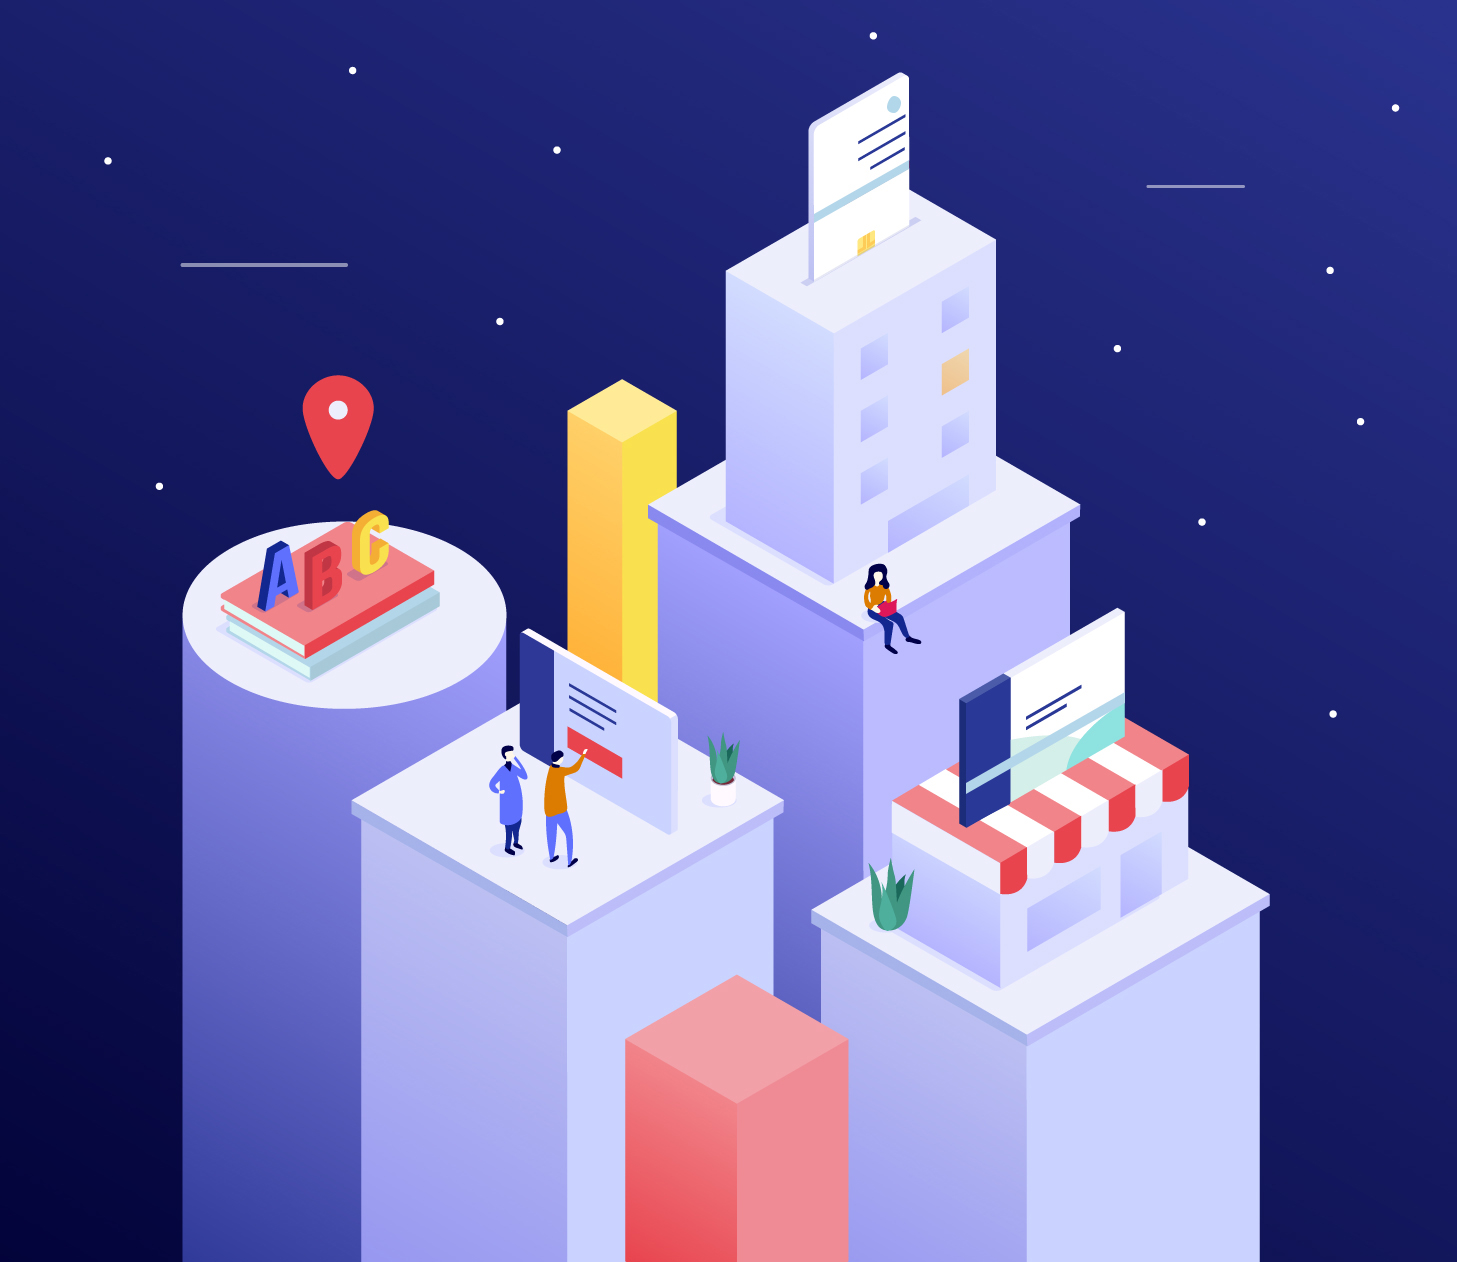 isometric design example